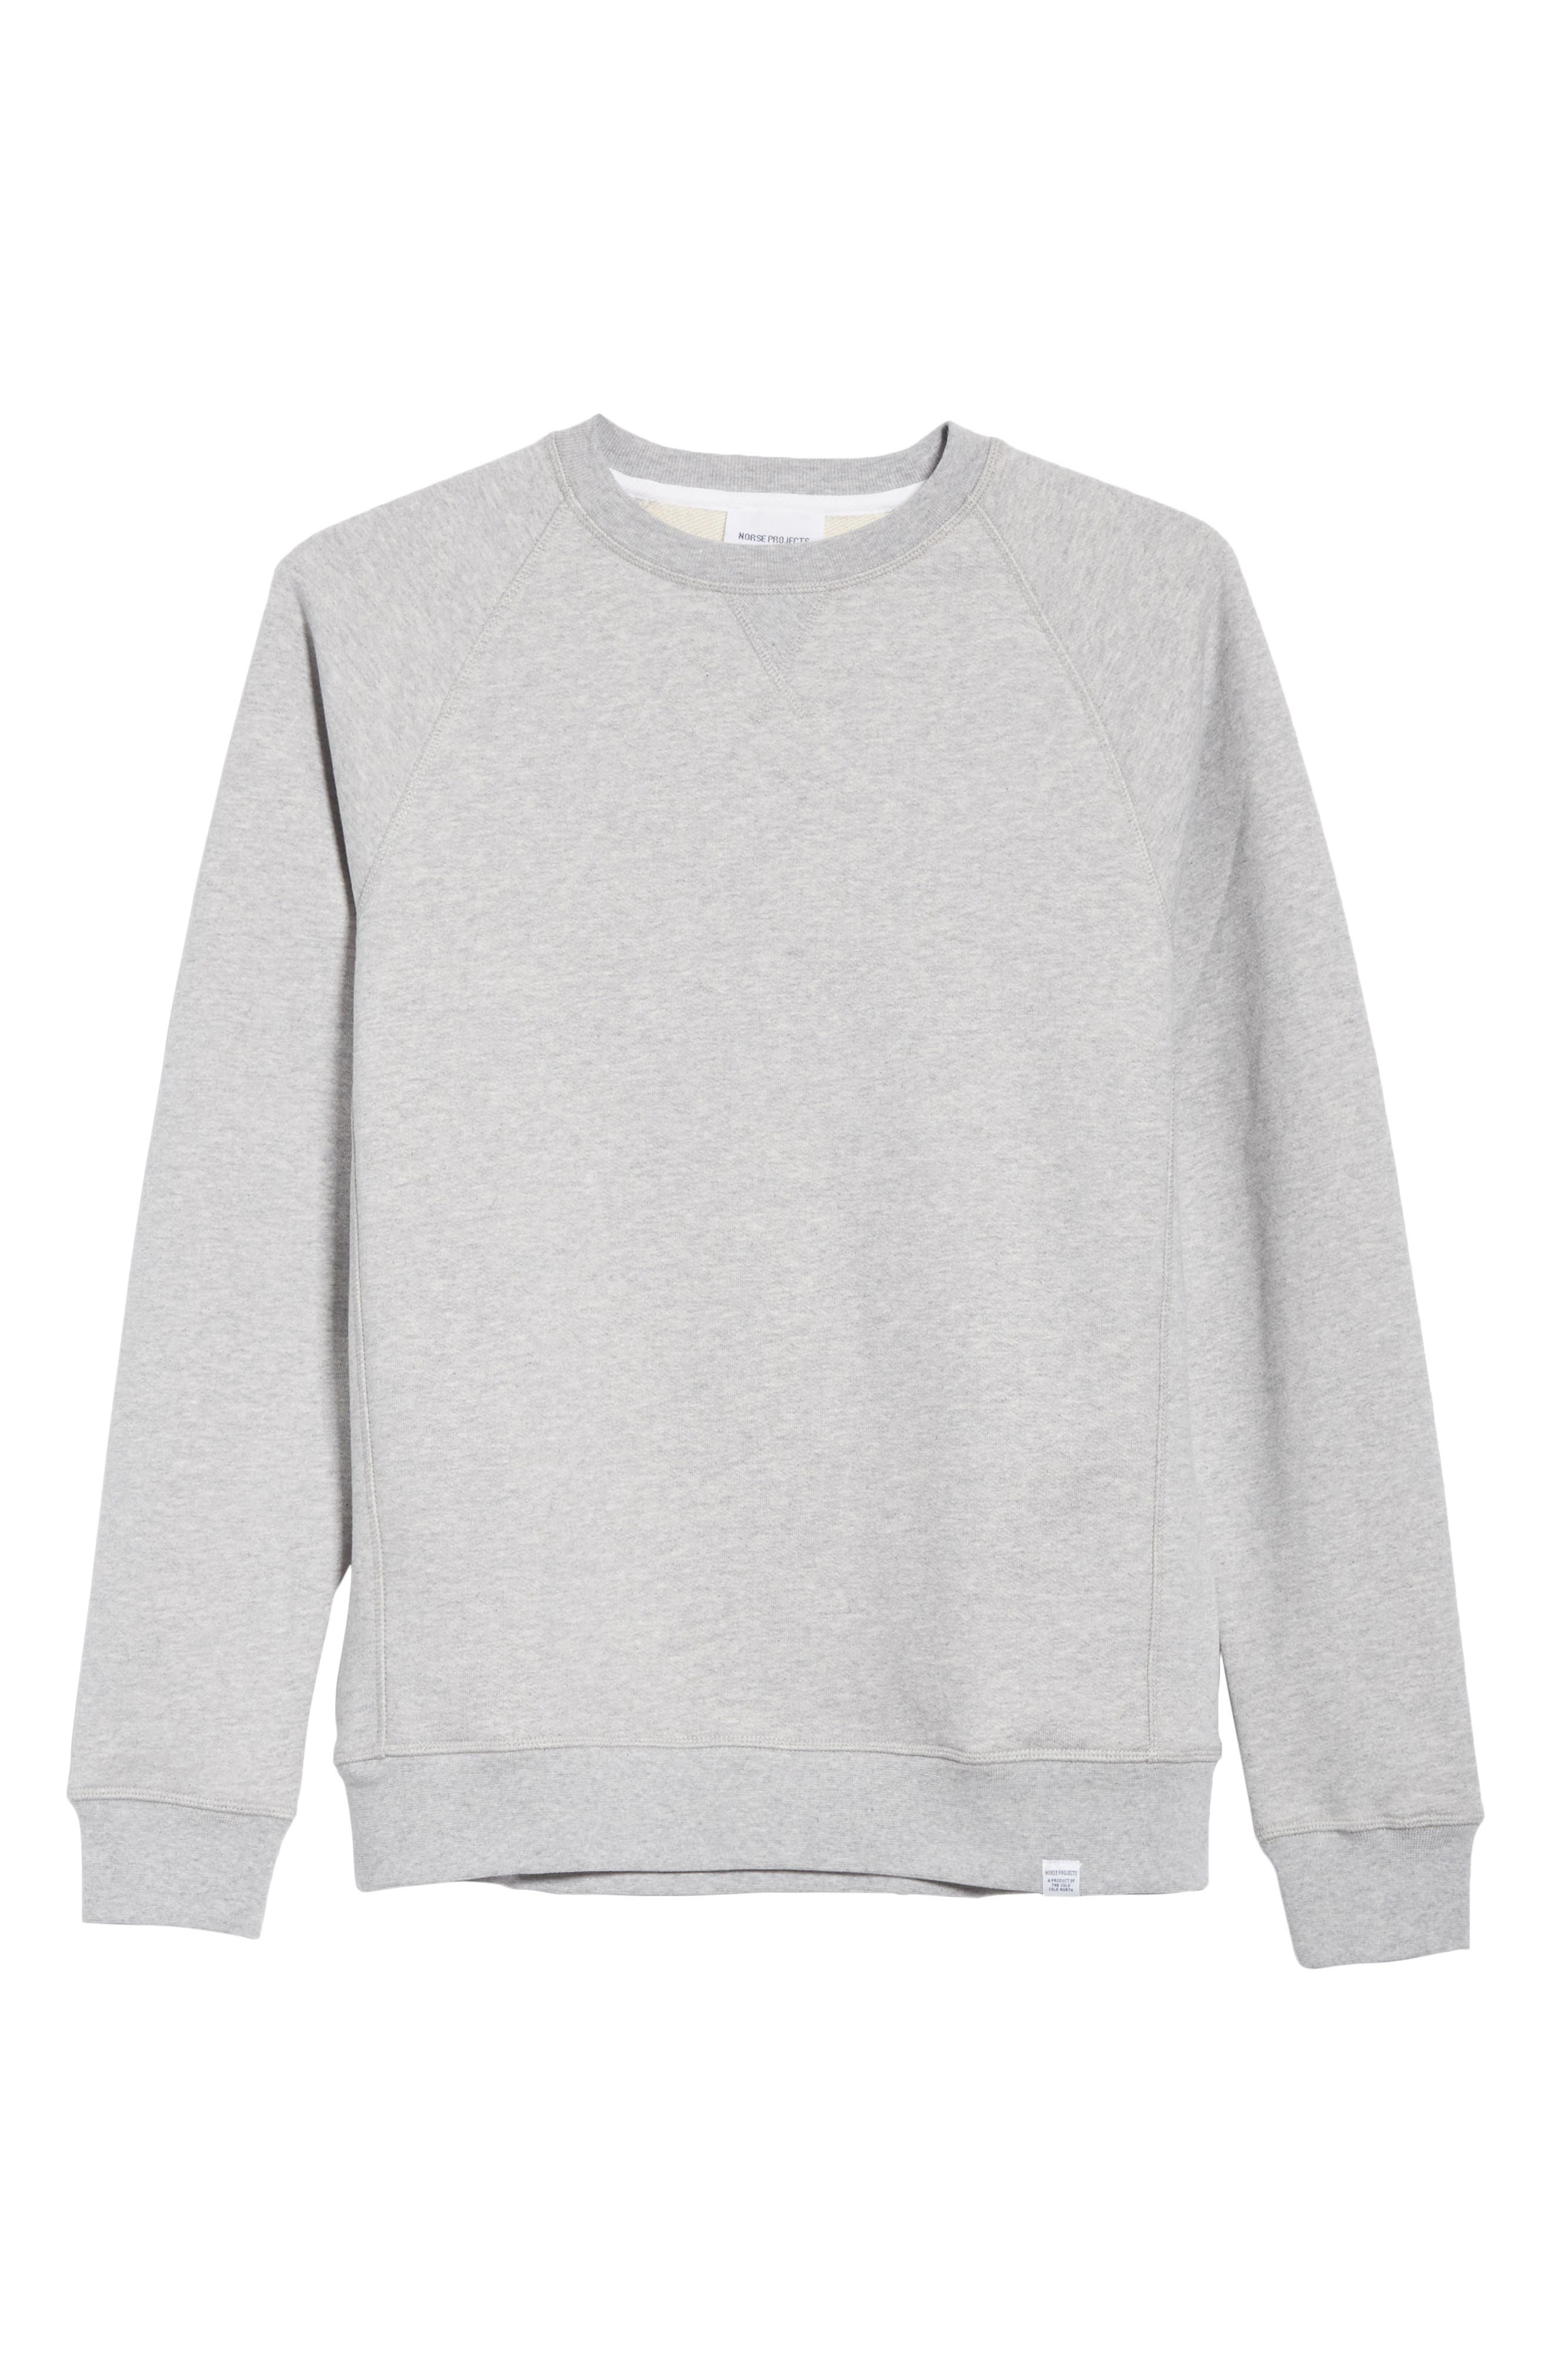 Ketel Crewneck Sweatshirt,                             Alternate thumbnail 6, color,                             050